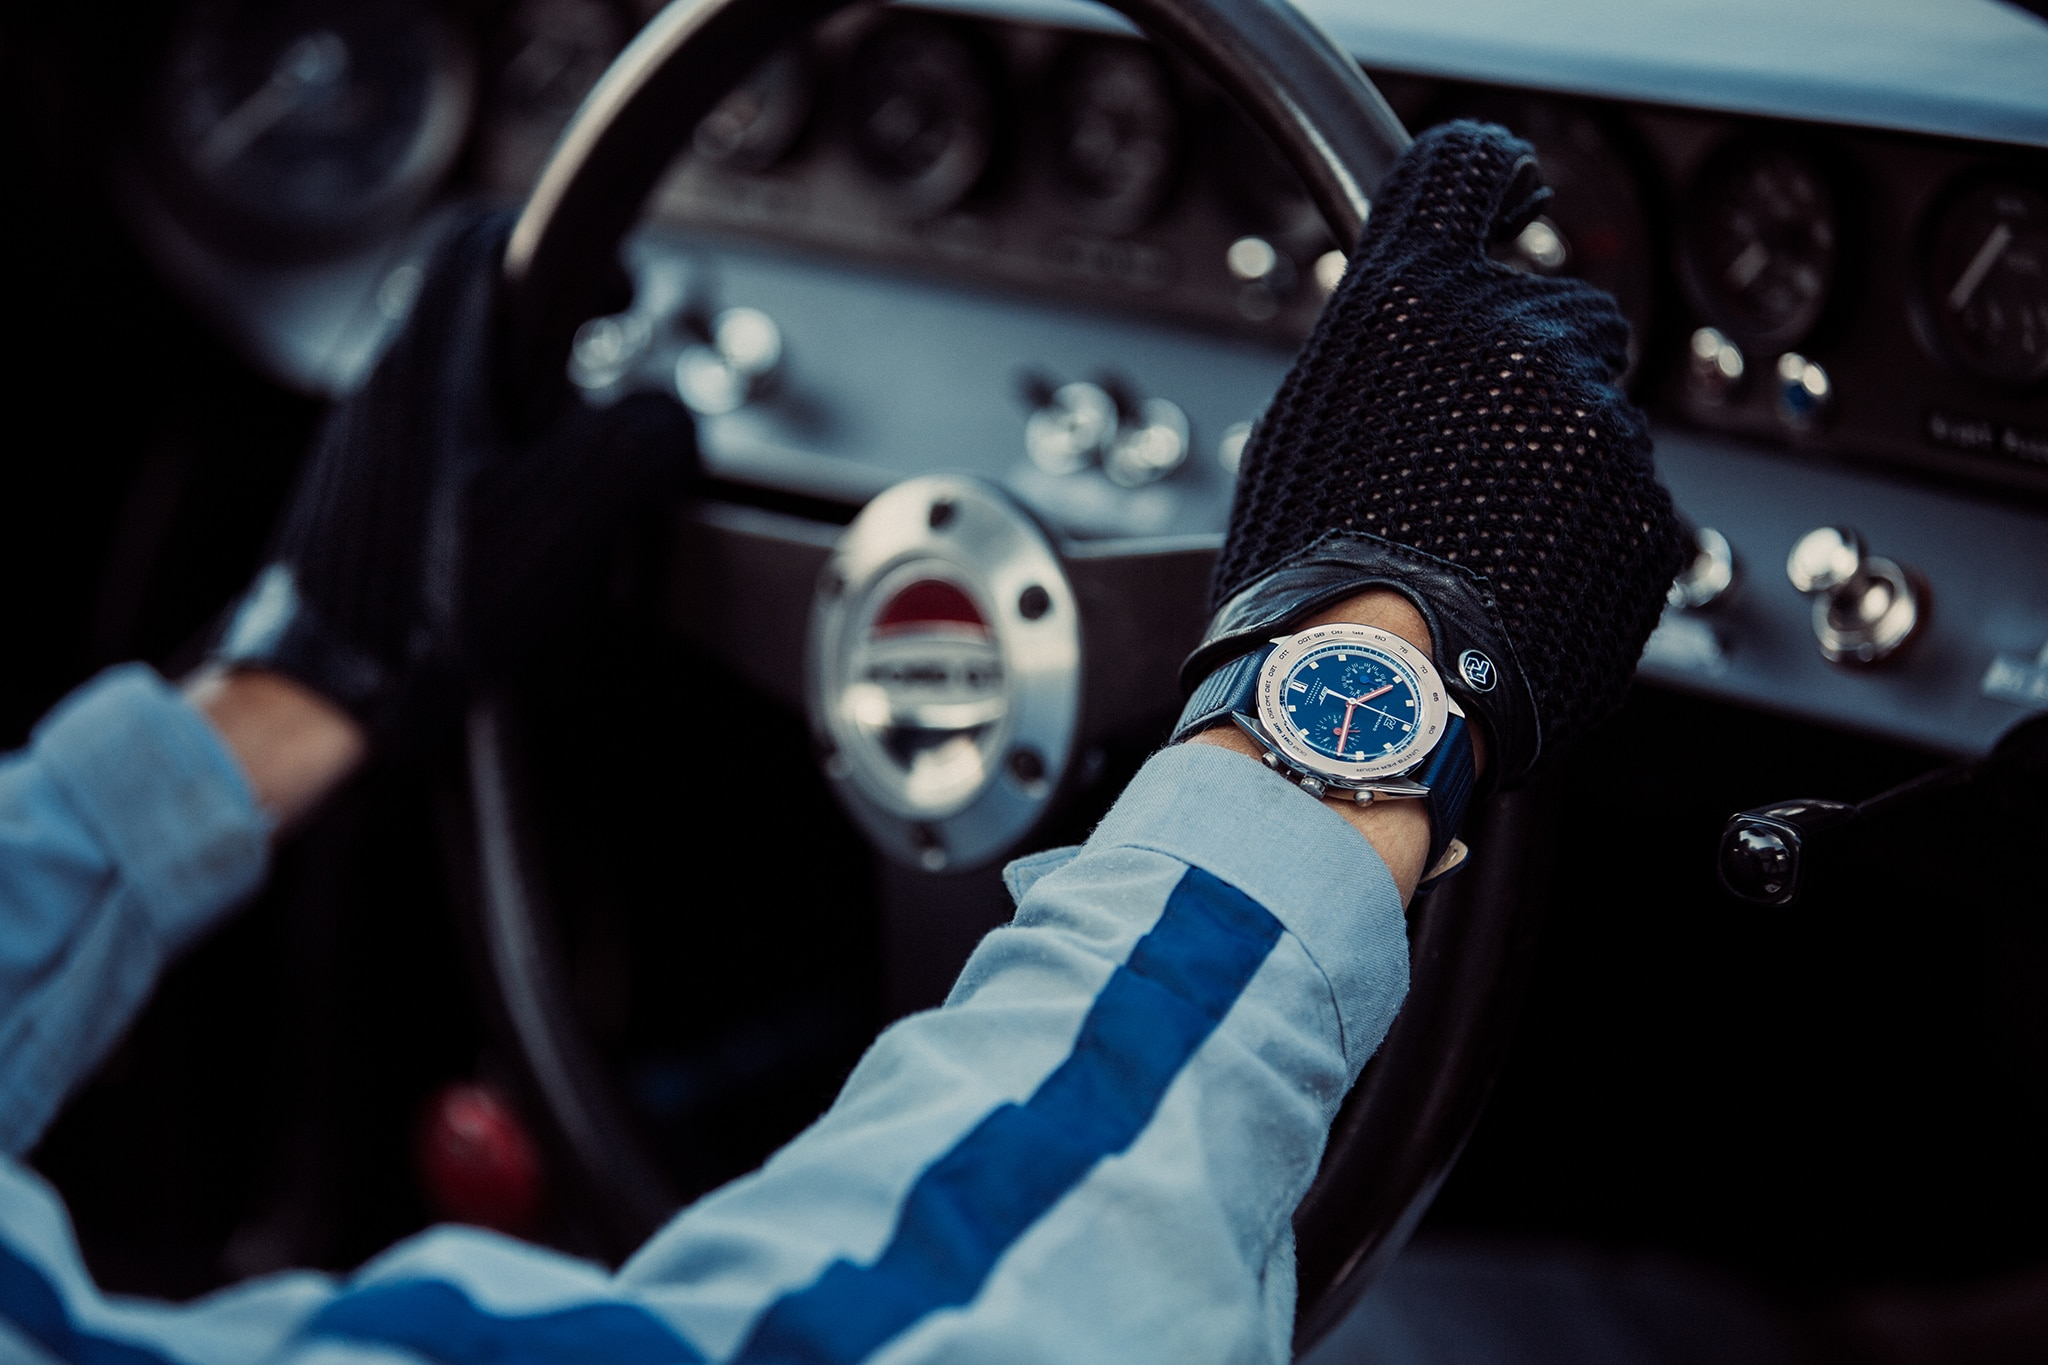 Autodromo Ford GT Endurance Chronograph In Car